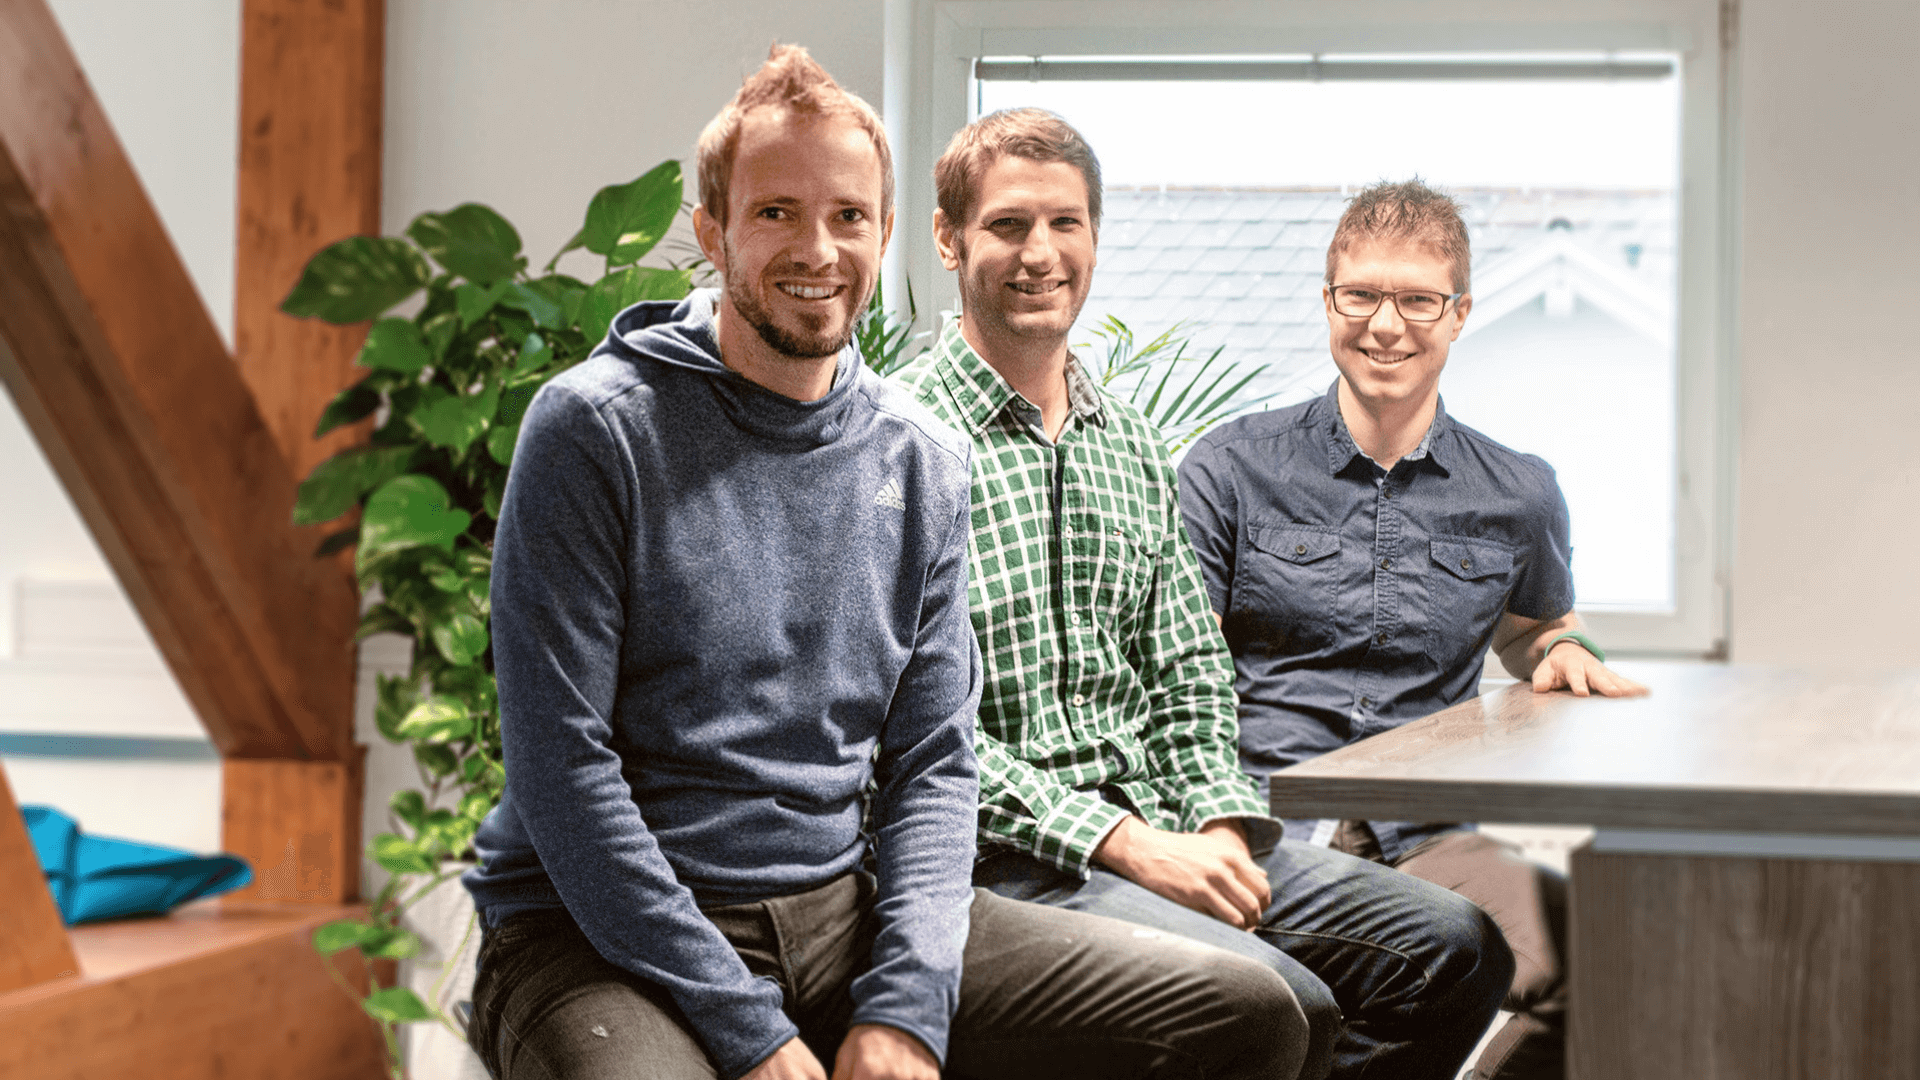 Six years ago the three Michaels founded Tractive as a start-up